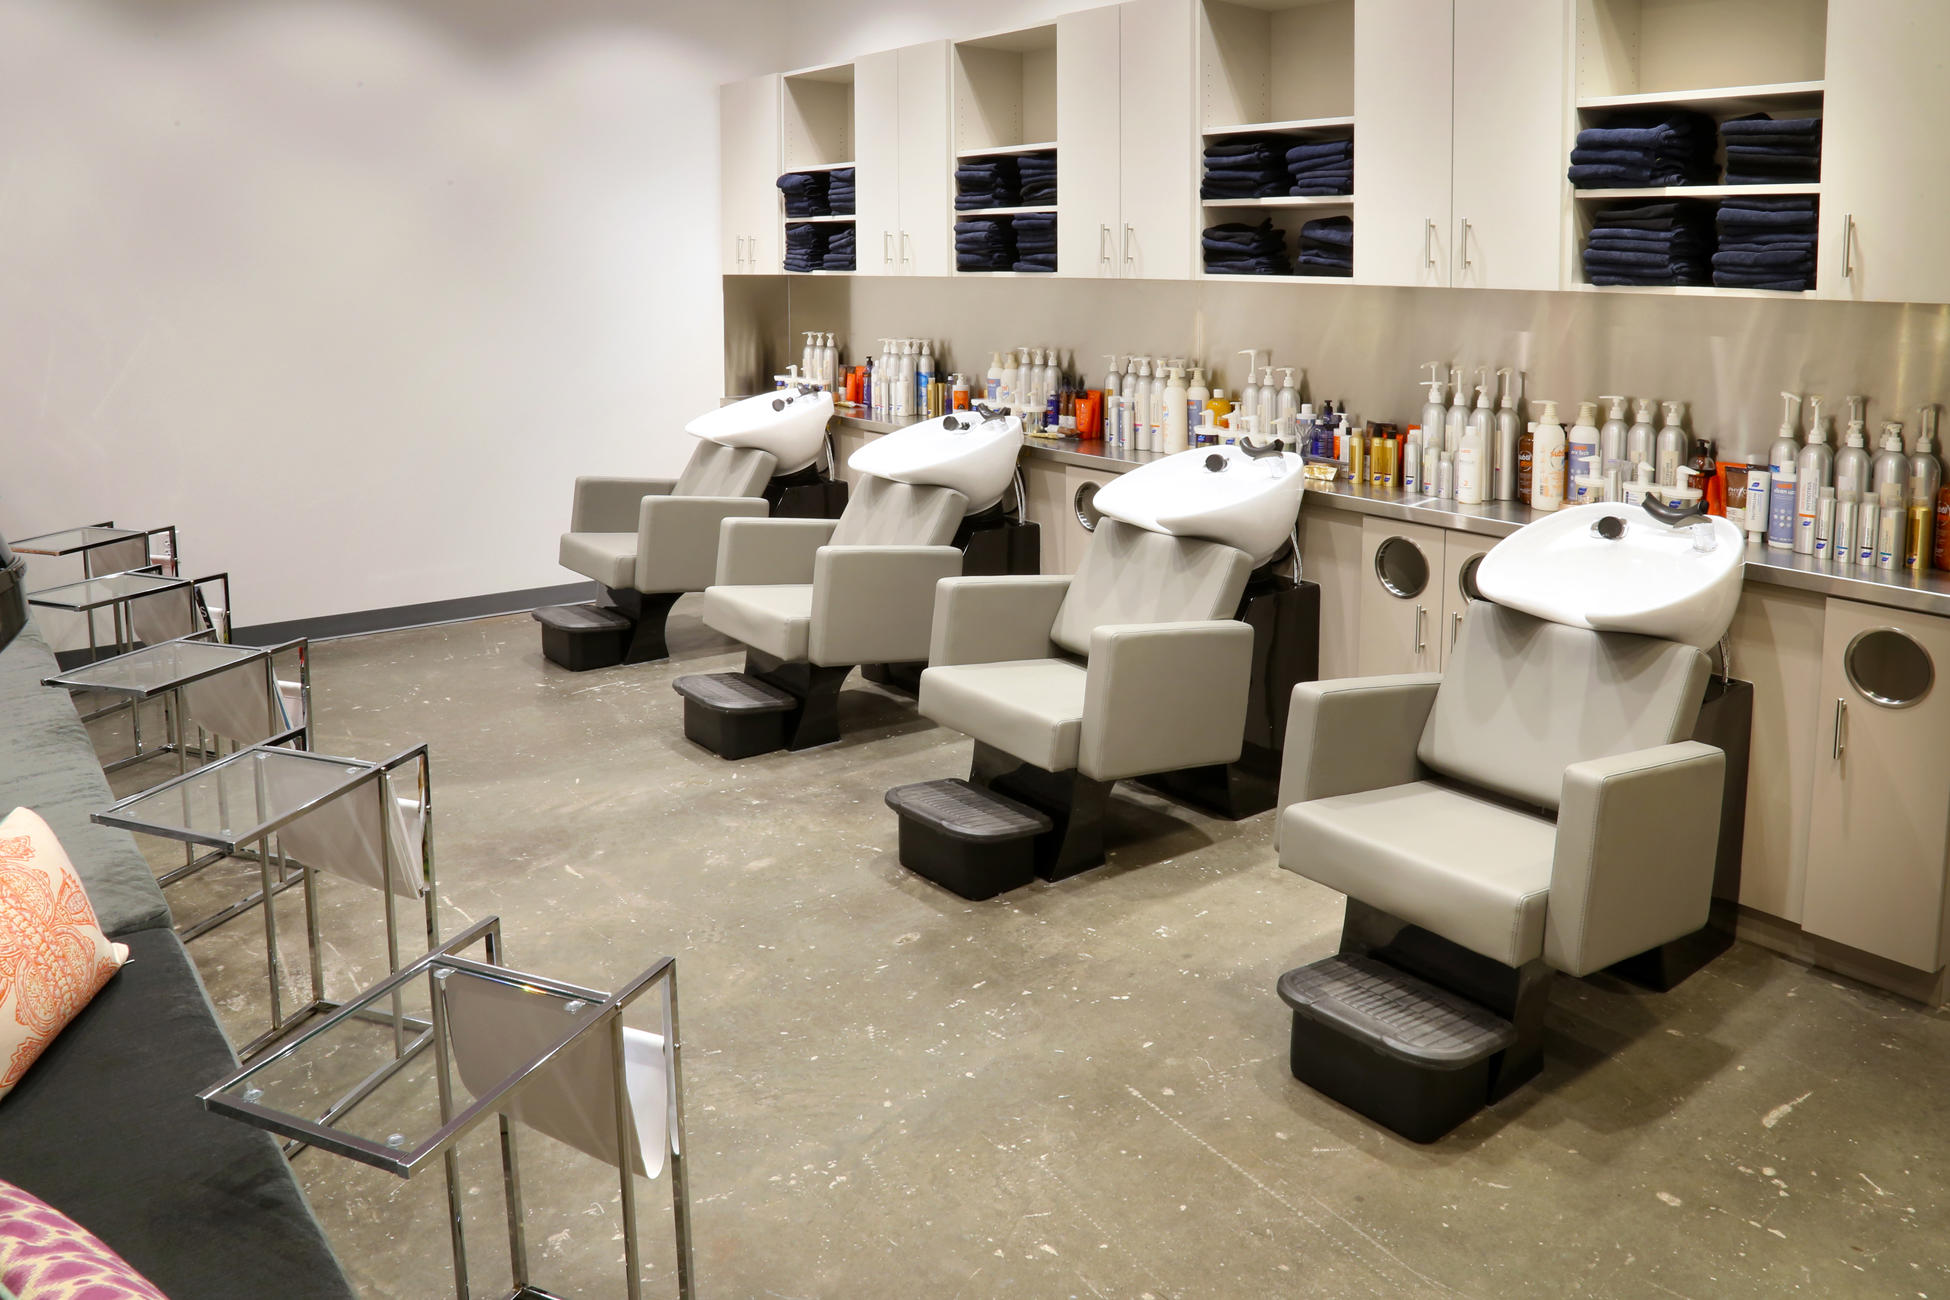 Affordable hair salons austin tx - Santa monica restaurants